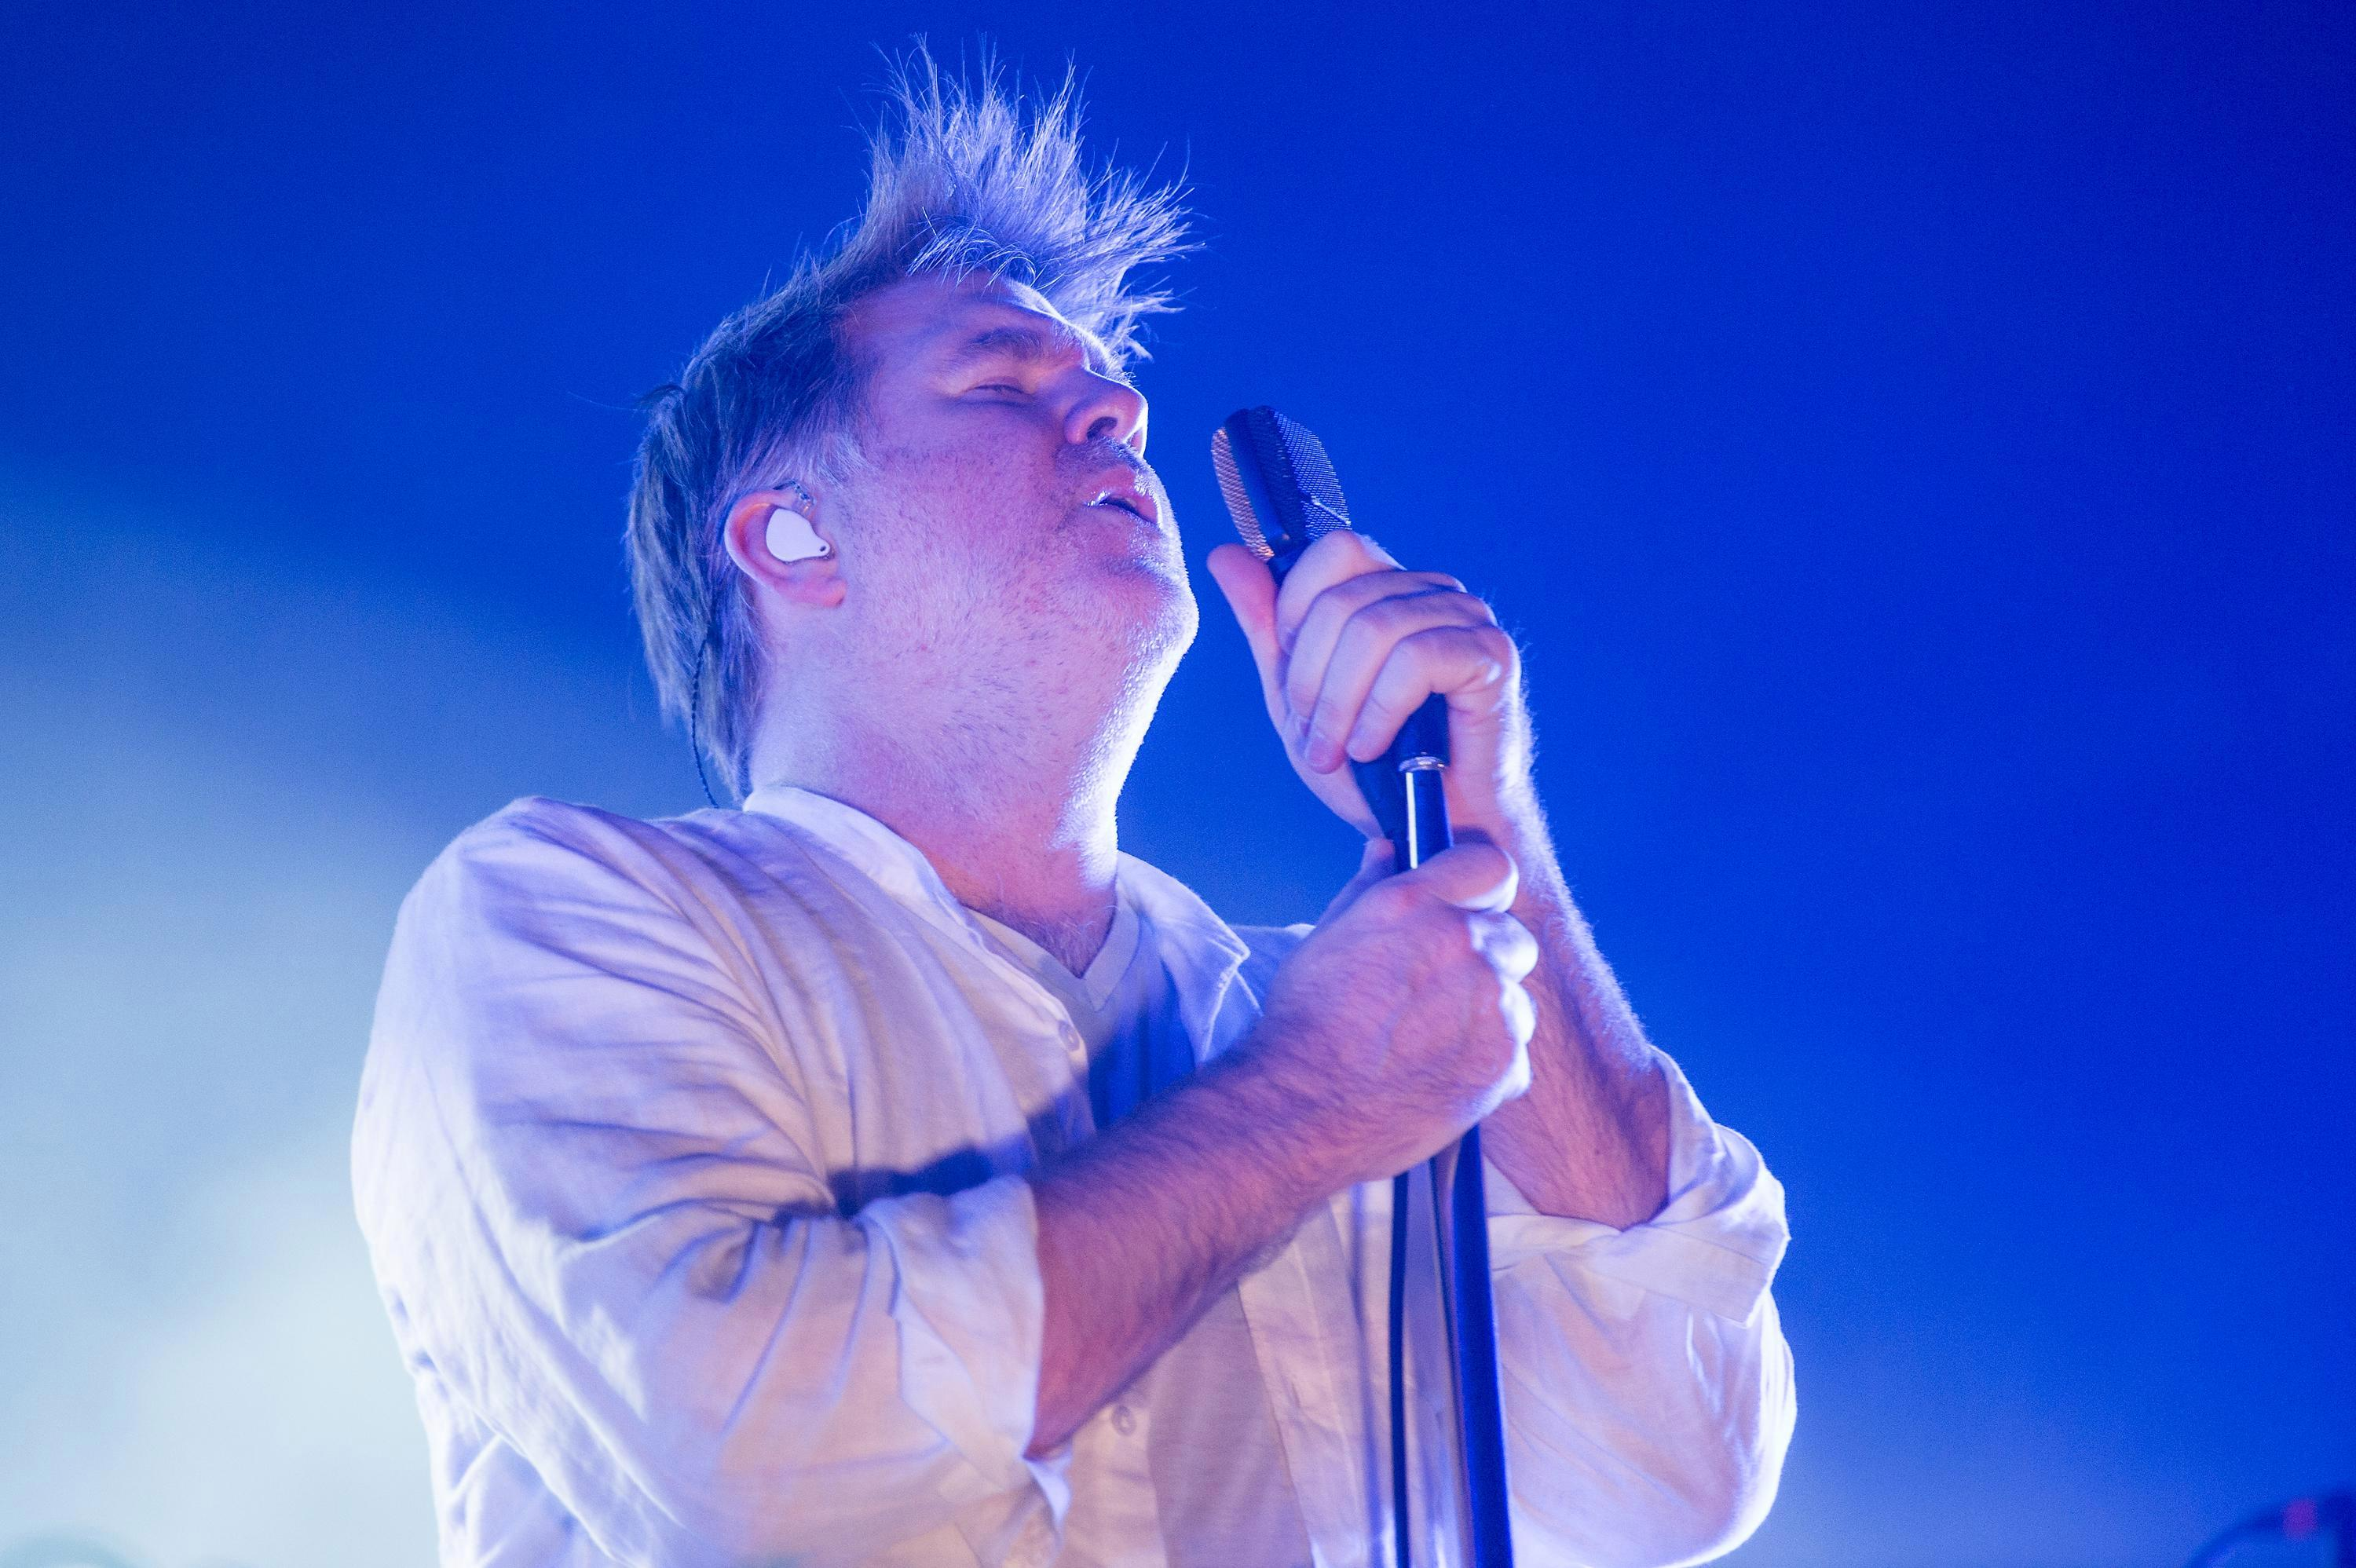 Who are LCD Soundsystem? Who are the Brit Awards 2018 nominee rock band members and what are their biggest songs?